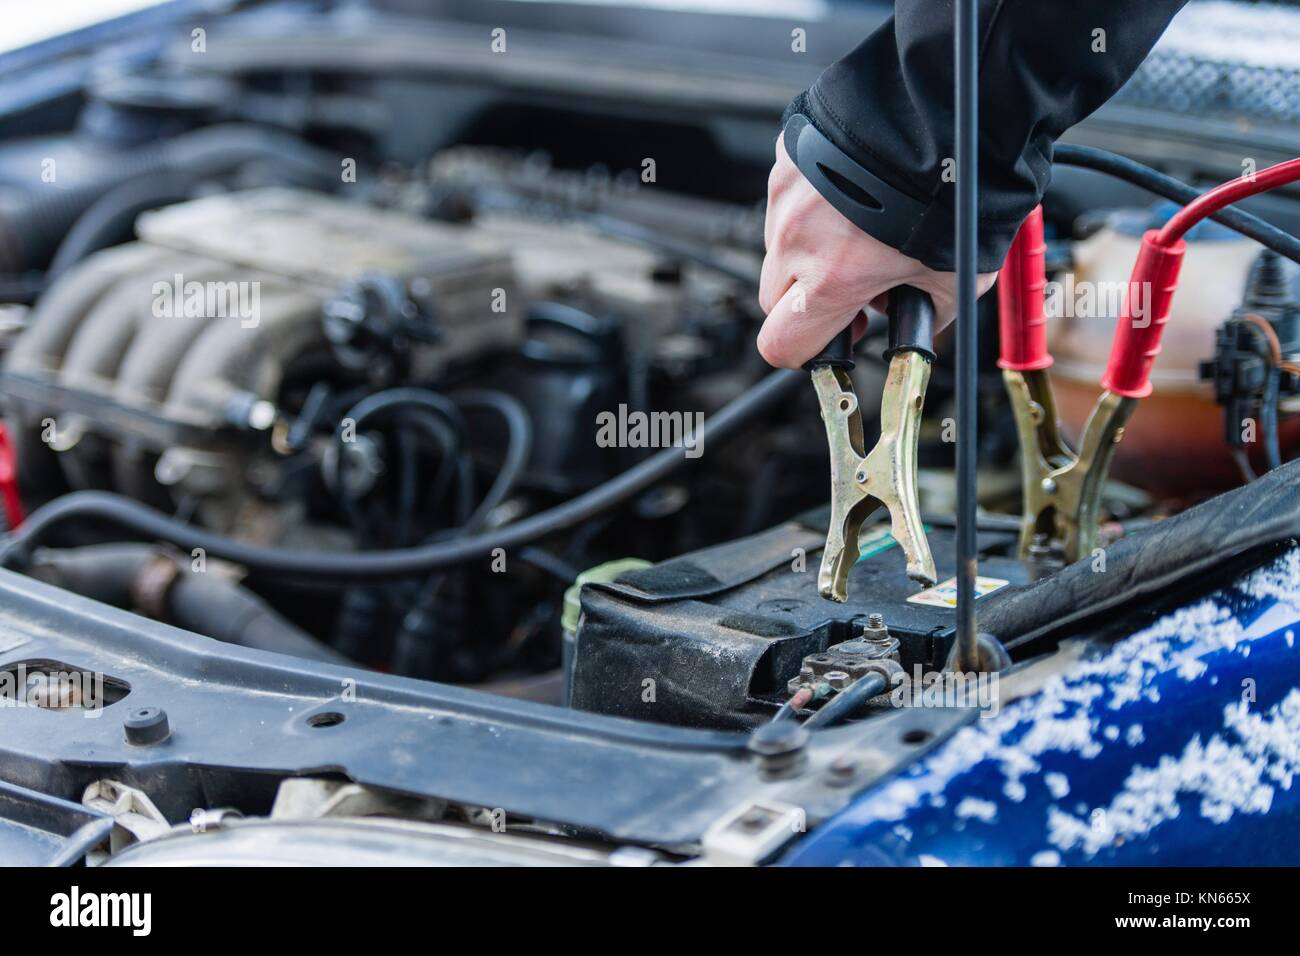 The booster cables and discharged battery, cold winter day. - Stock Image